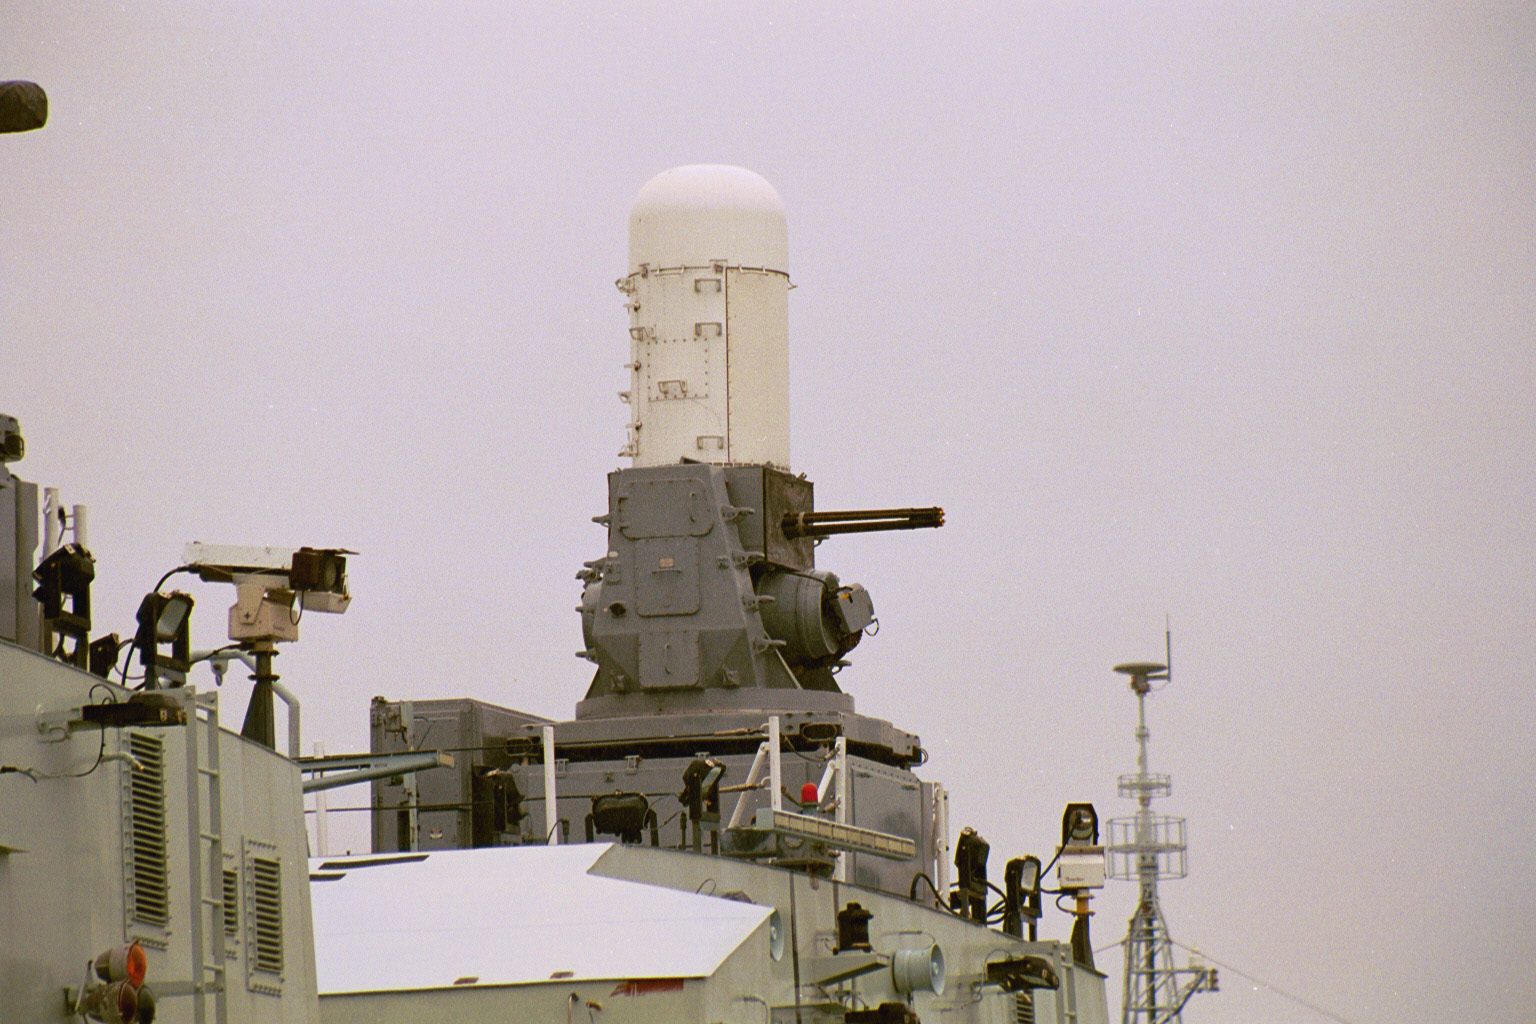 PHALANX 20mm (CIWS) Mk 15 Close-In Weapon System: This weapon's gun assembly consists of a 20 mm M61A1 Vulcan Gatling-principle gun. The M61A1 Vulcan is a six-barreled weapon capable of phenomenally high rates of fire (3000 rds/min). The entire system is capable of dealing with high-angle driving missiles. It also has surface engagement capability. This latter characteristic was developed to meet a perceived requirement for a high-volume-of-fire weapon to engage small high-speed, highly-maneuverable boats, helicopters and low-performance fixed-wing aircraft. The system equips Halifax class frigates (1/ship), Iroquois class destroyers (1/ship) and Protecteur class replenishment ships (2/ship).